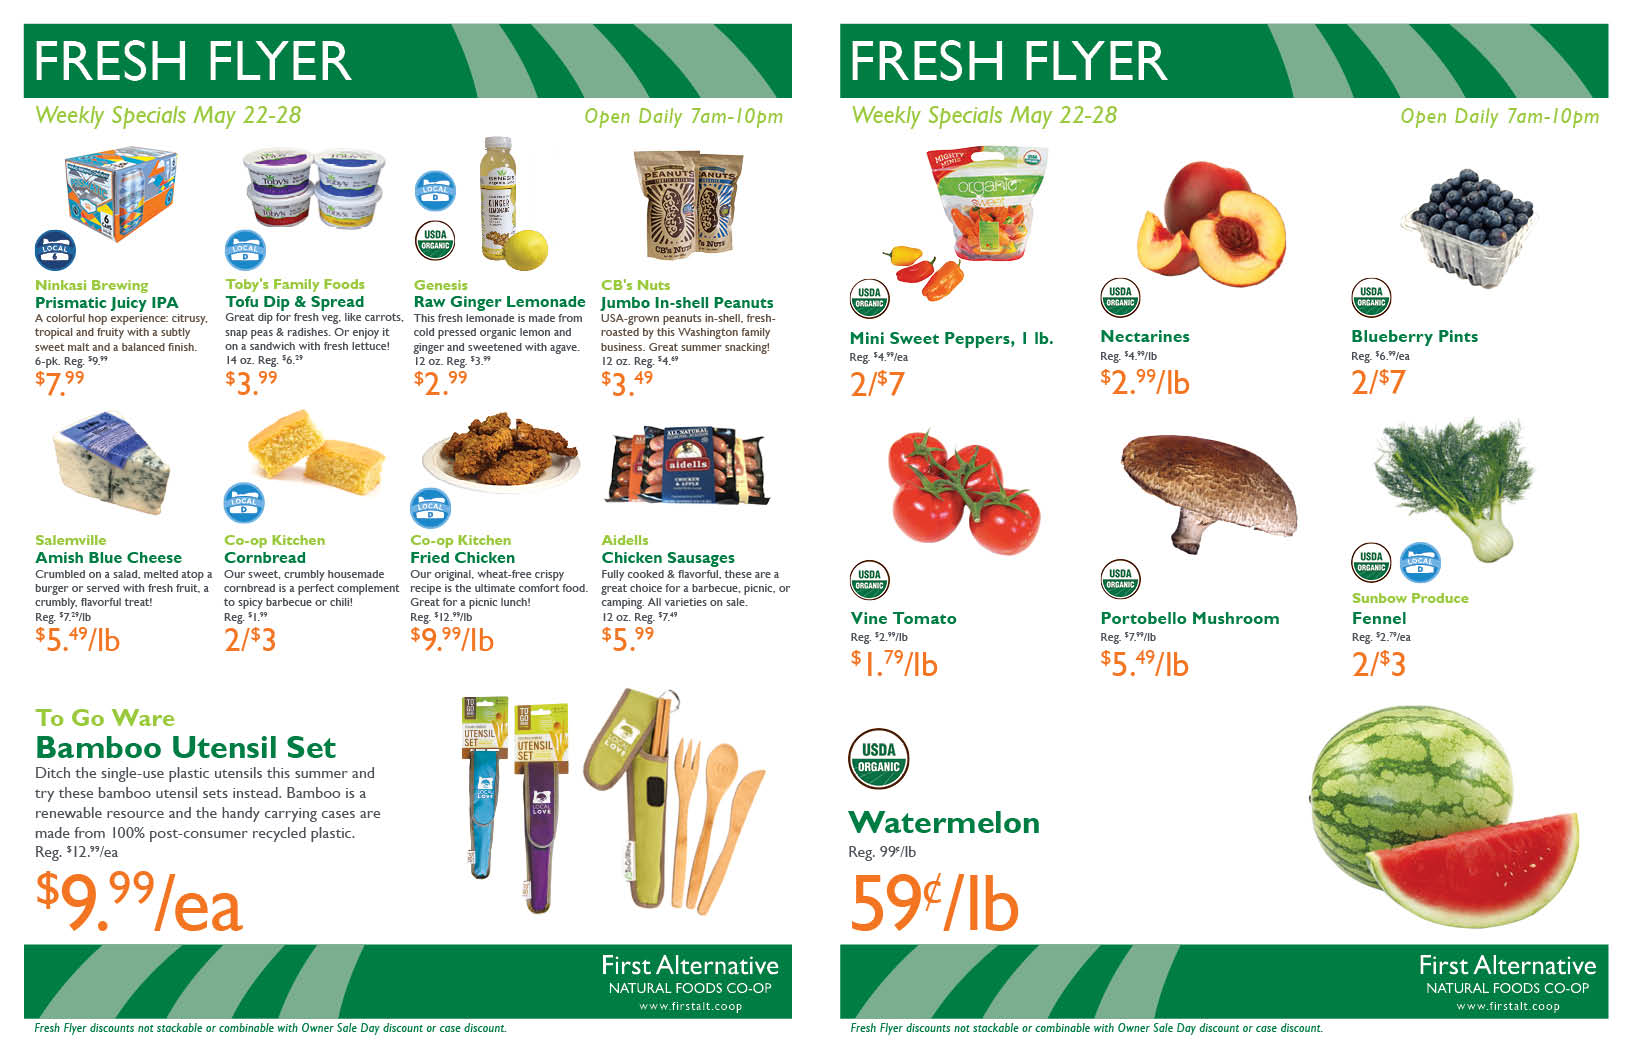 First Alternative Co-op Fresh Flyer May 22-28